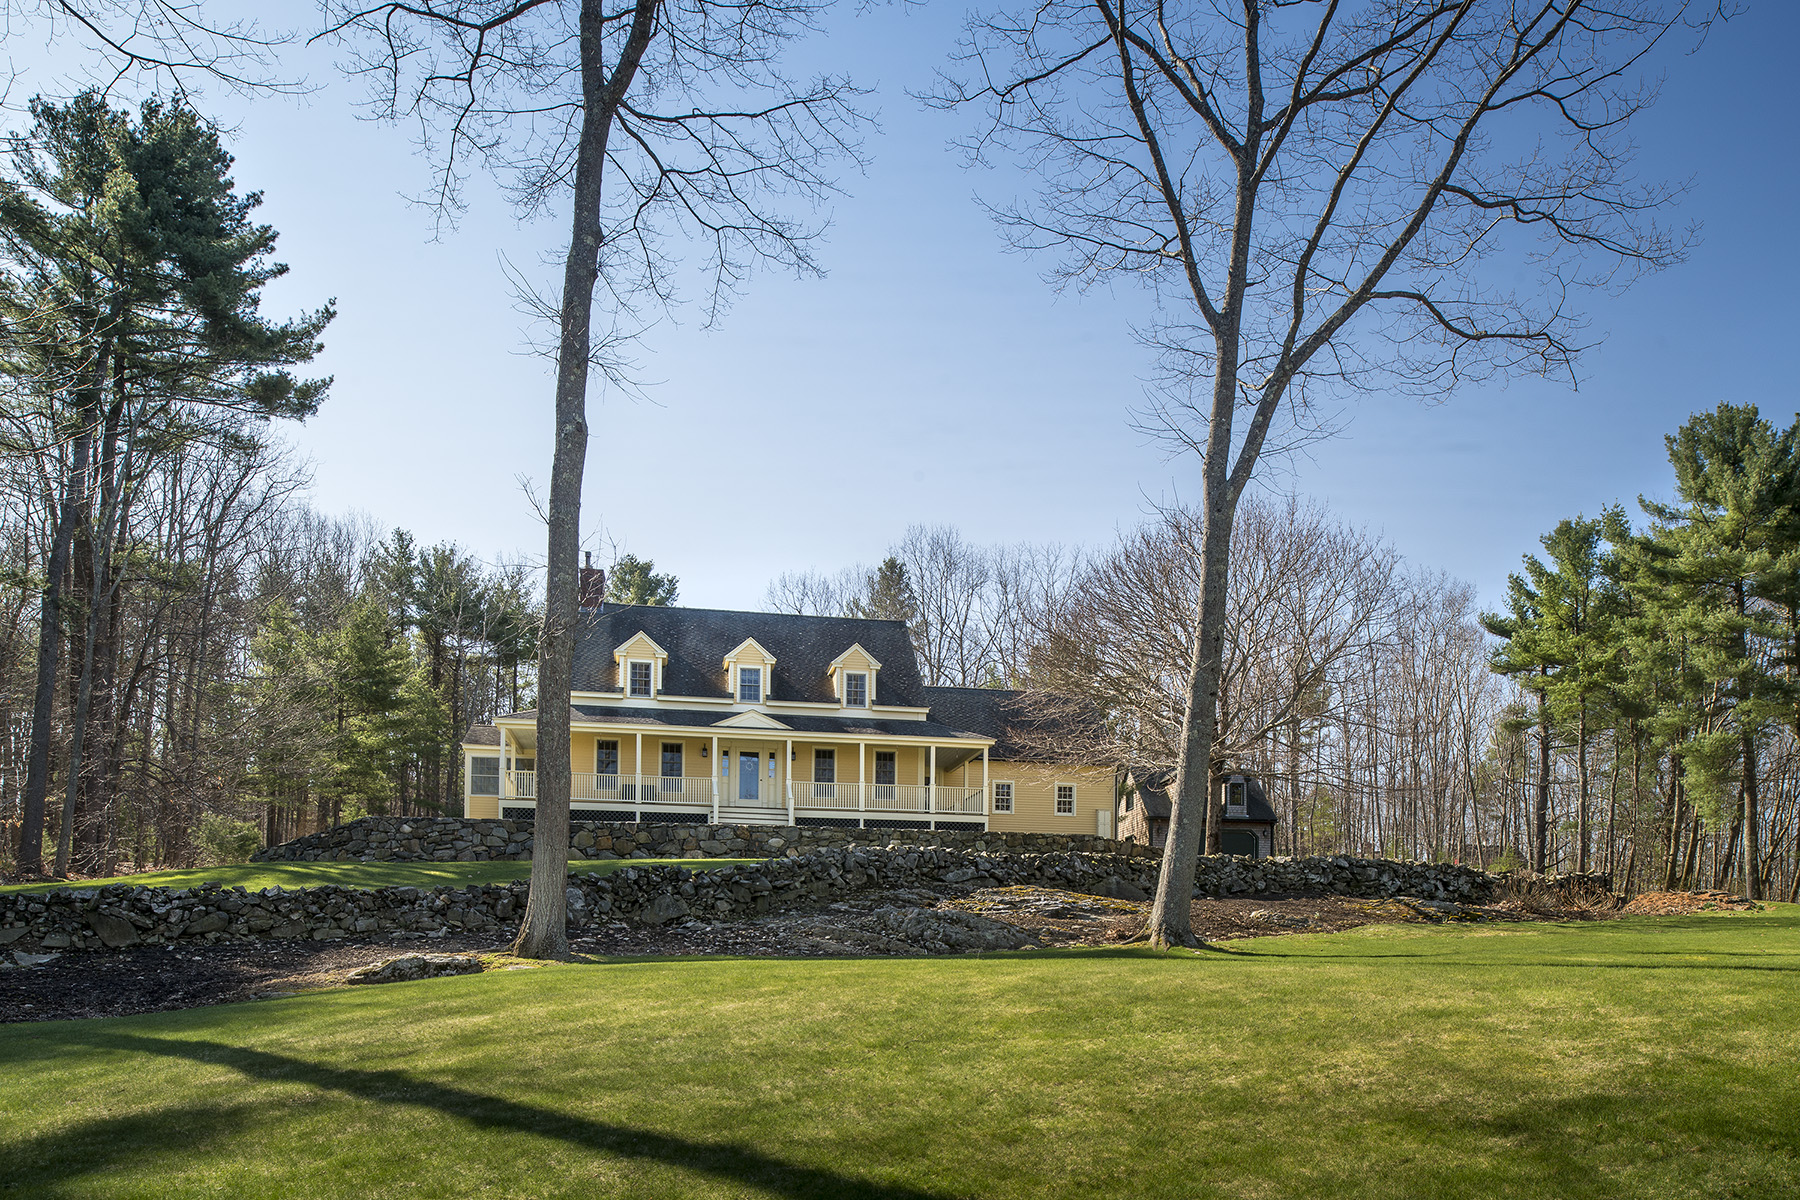 Single Family Home for Sale at 8 Old Seabury 8 Old Seabury Road York, Maine, 03909 United States